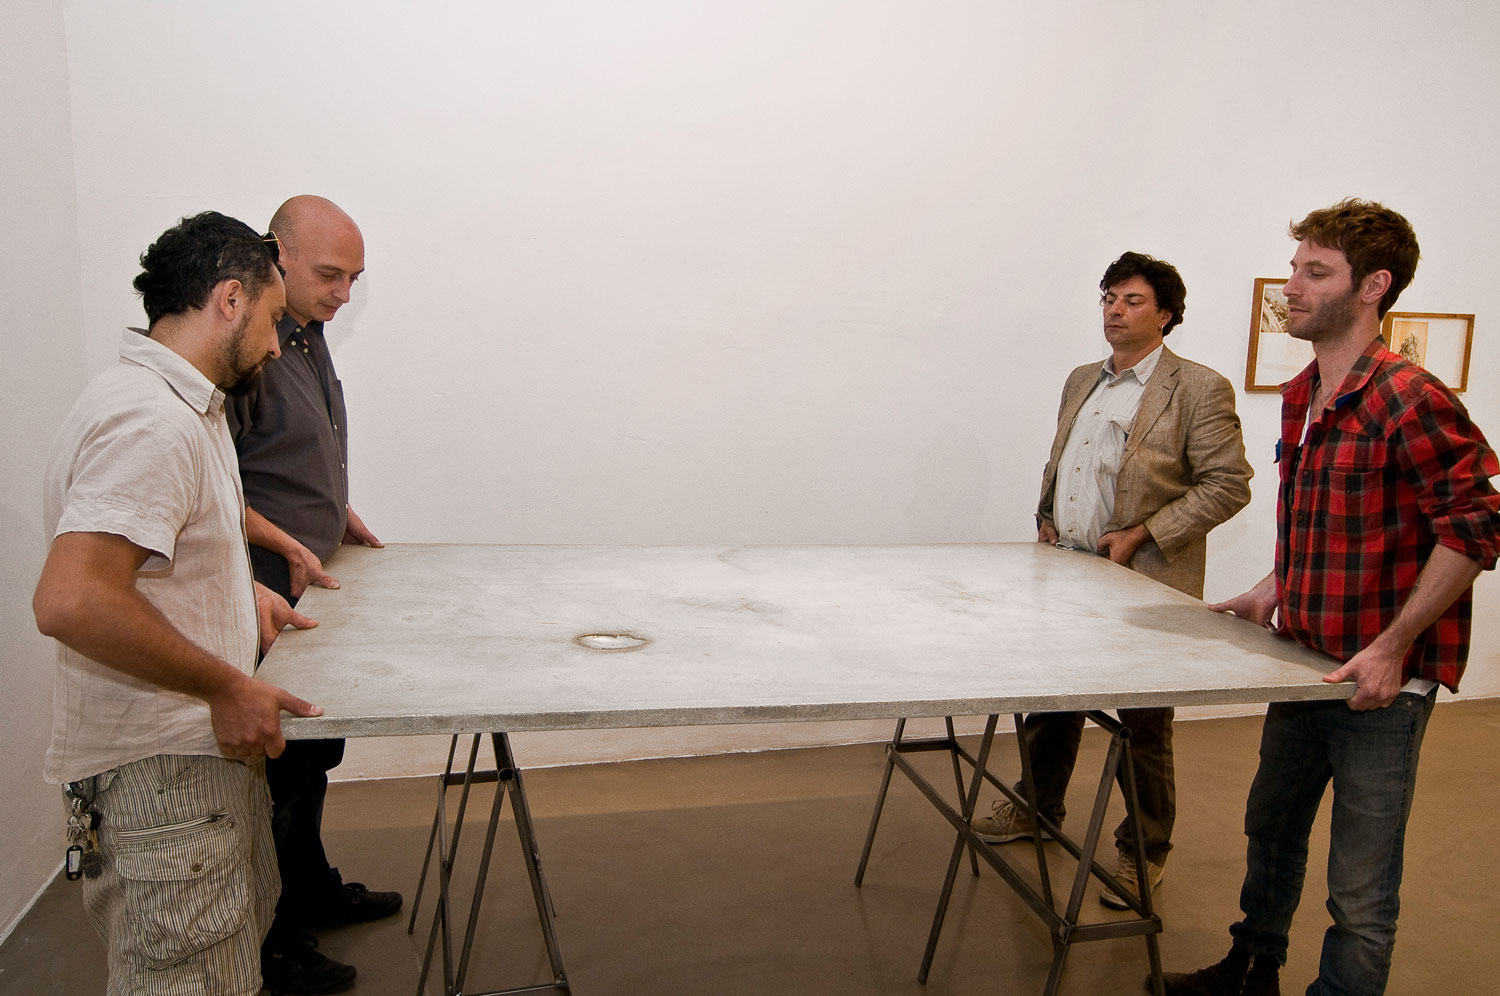 Alessandro Piangiamore | Around an empty shell, 2011, performance